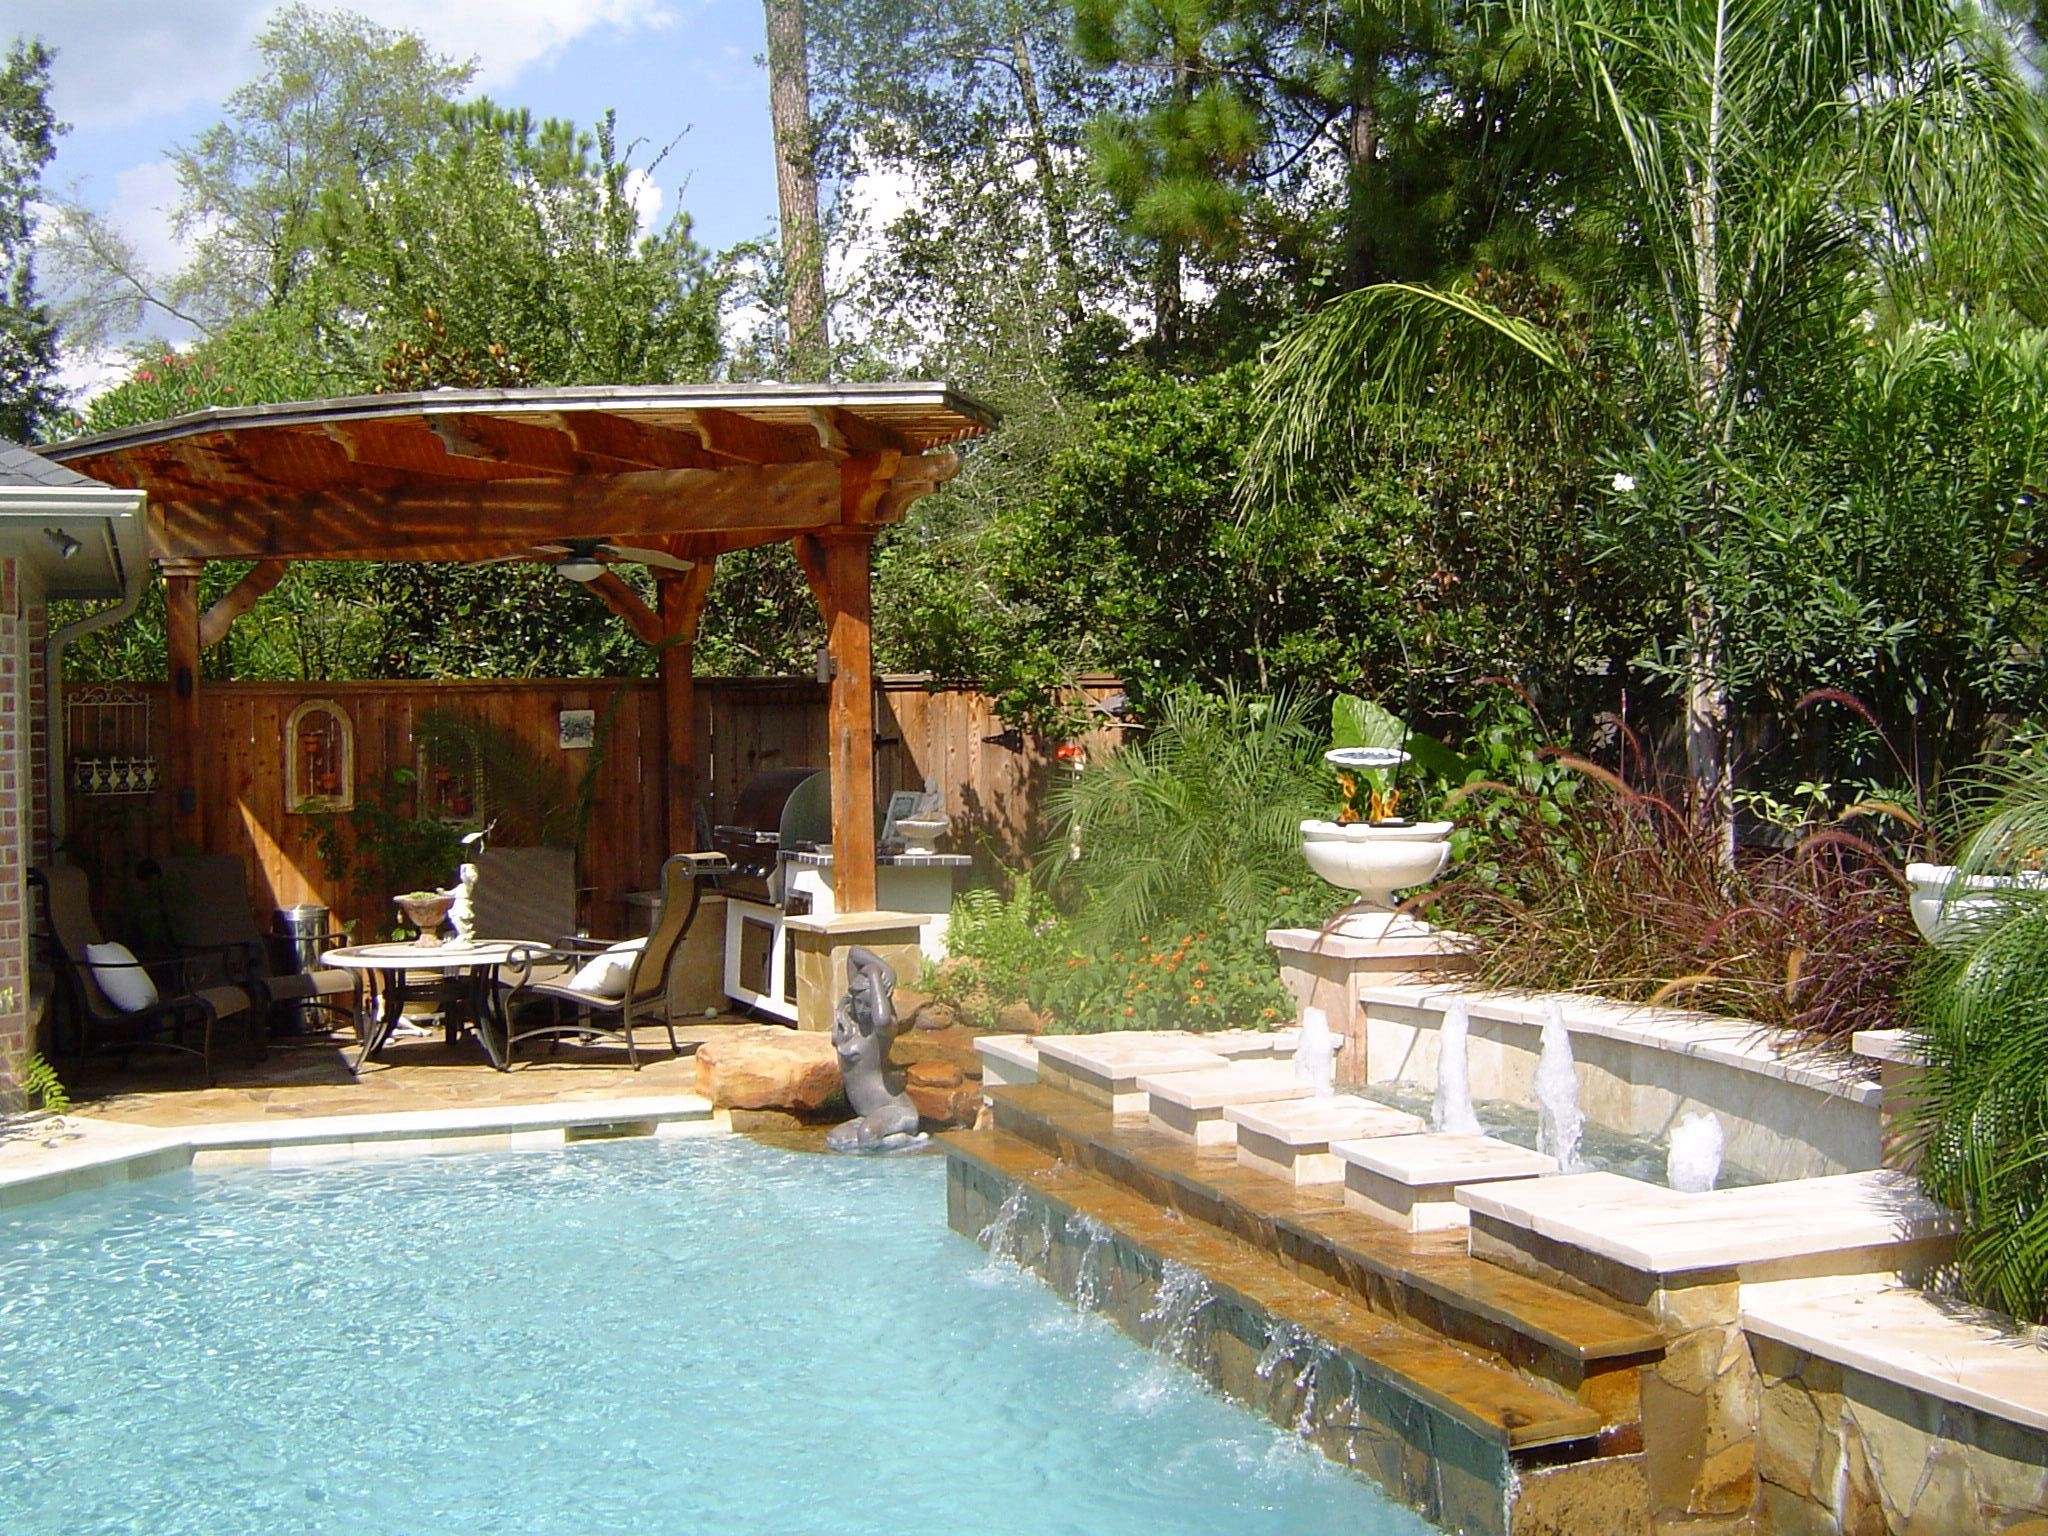 Backyard Pool Landscaping Ideas | HomesFeed